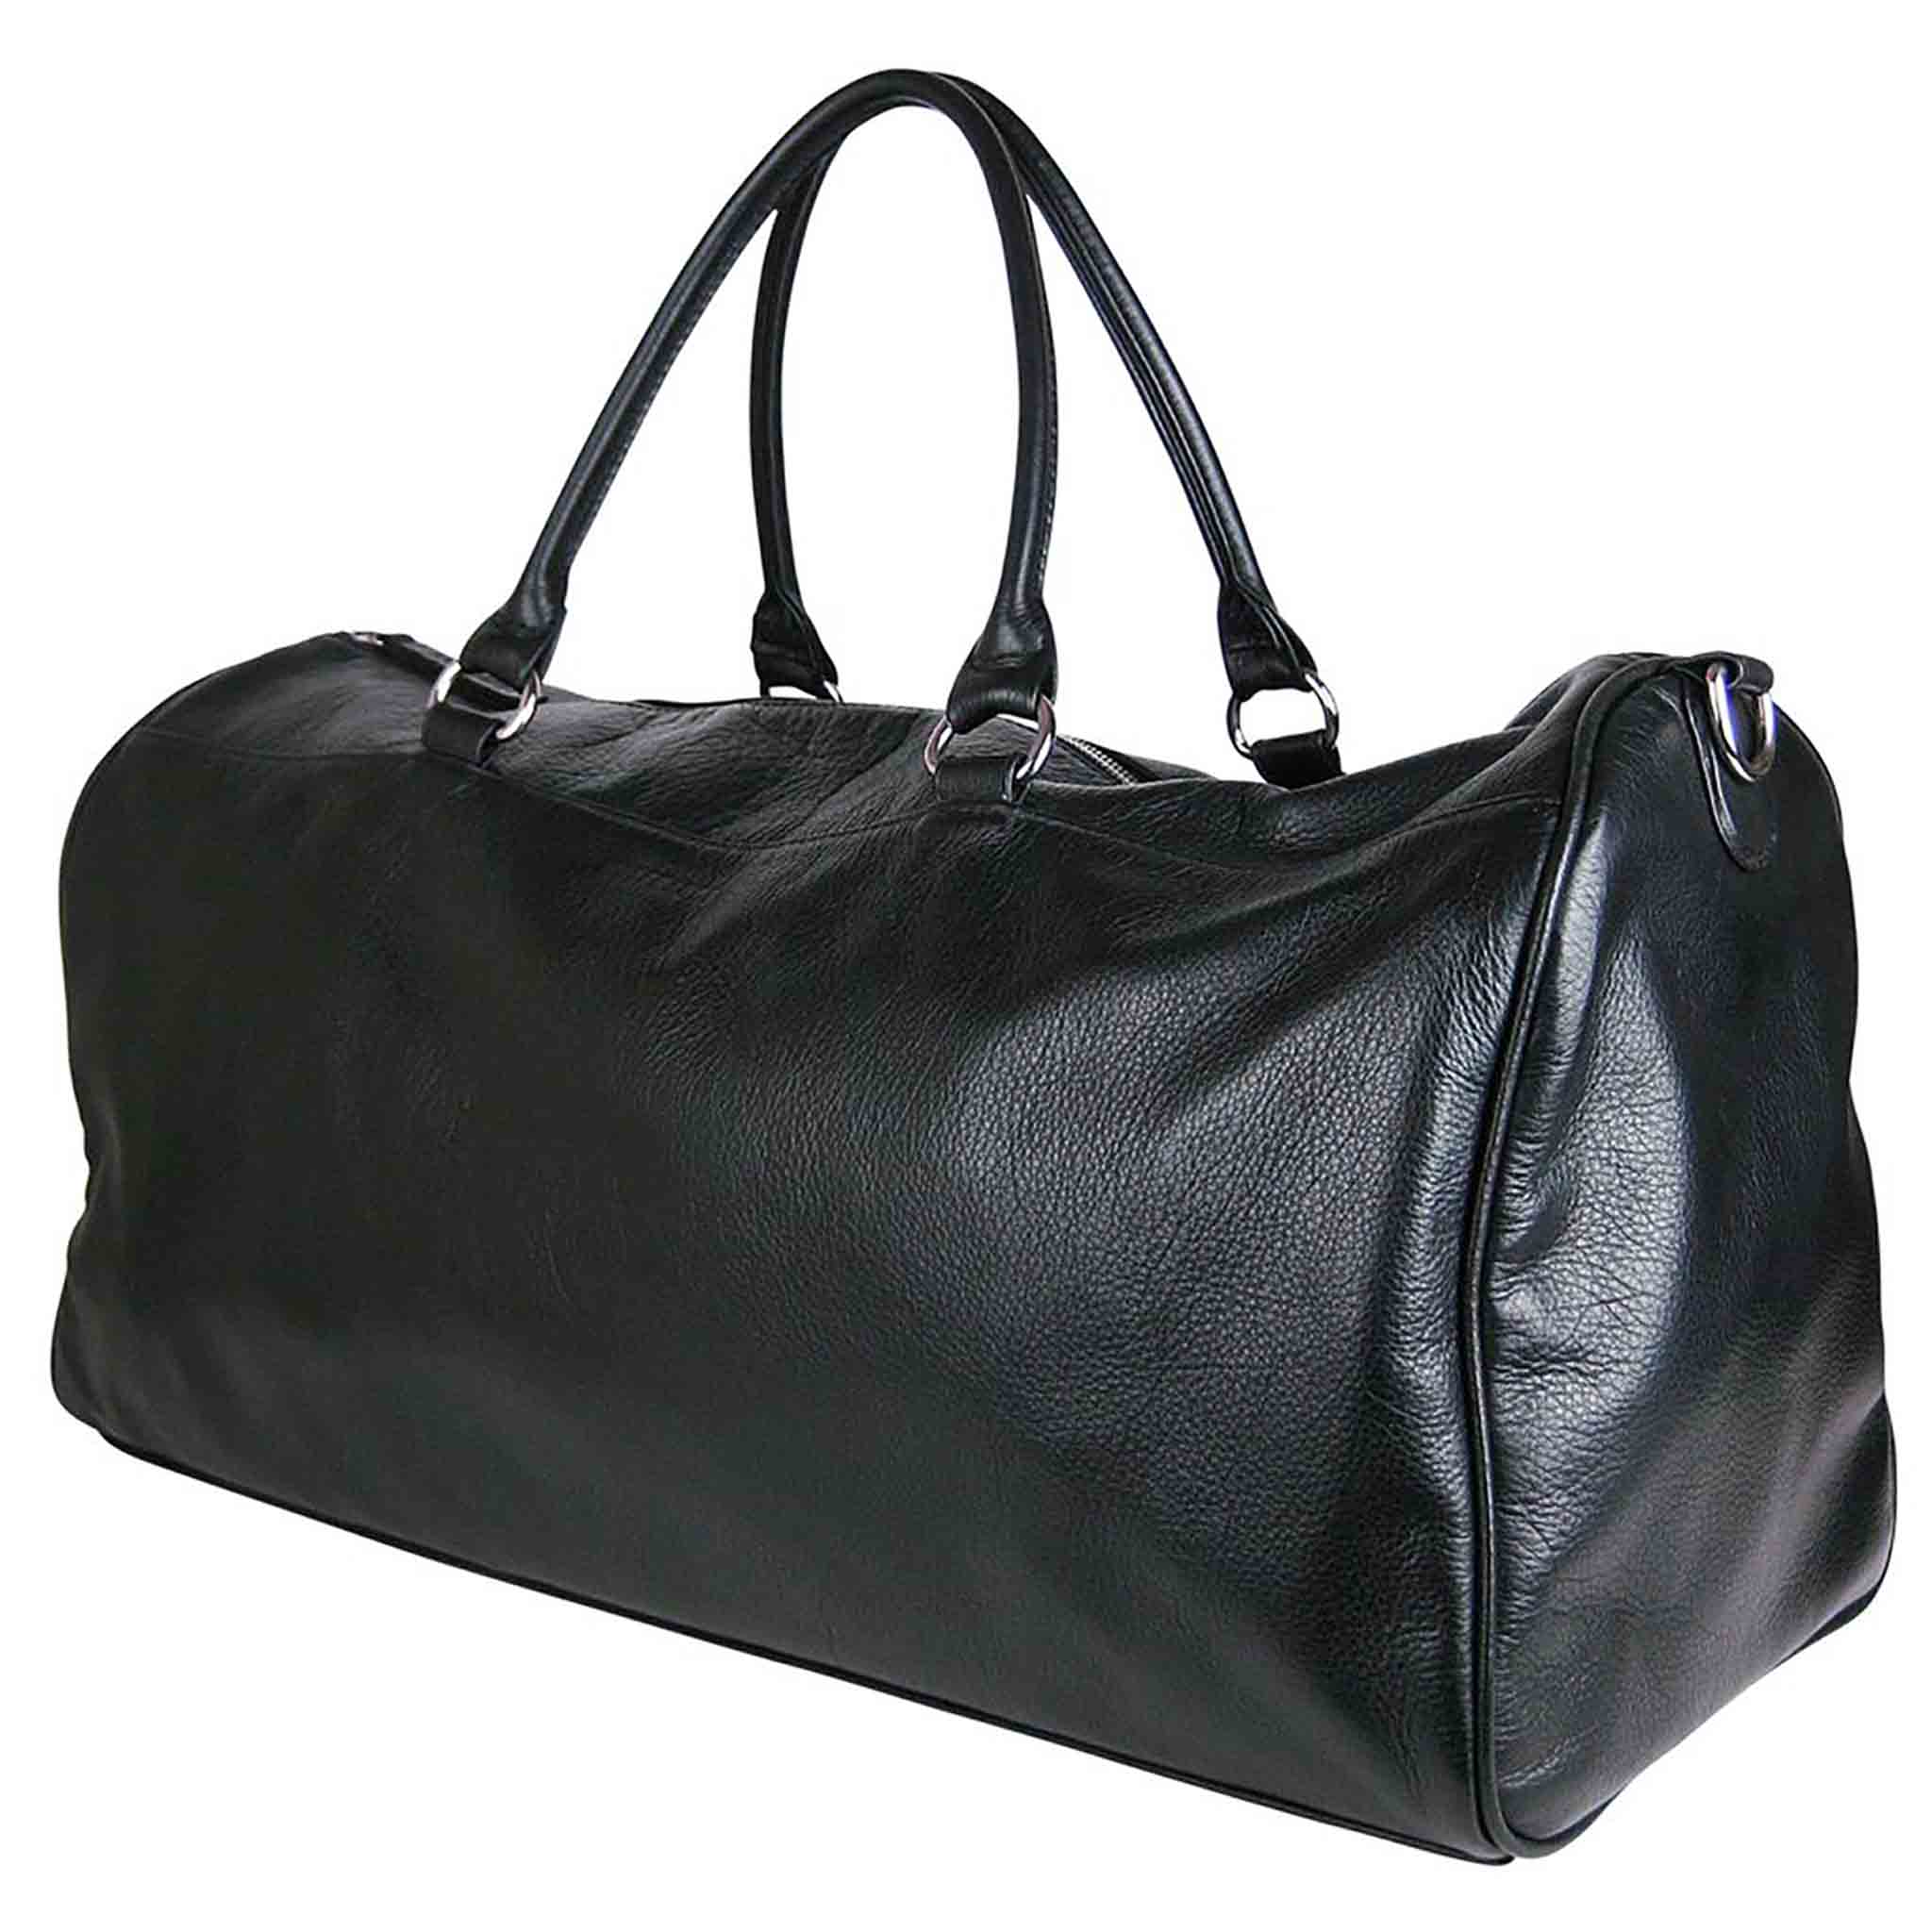 BLACK LEATHER WEEKENDER TRAVEL BAG MEN'S WOCHENDE